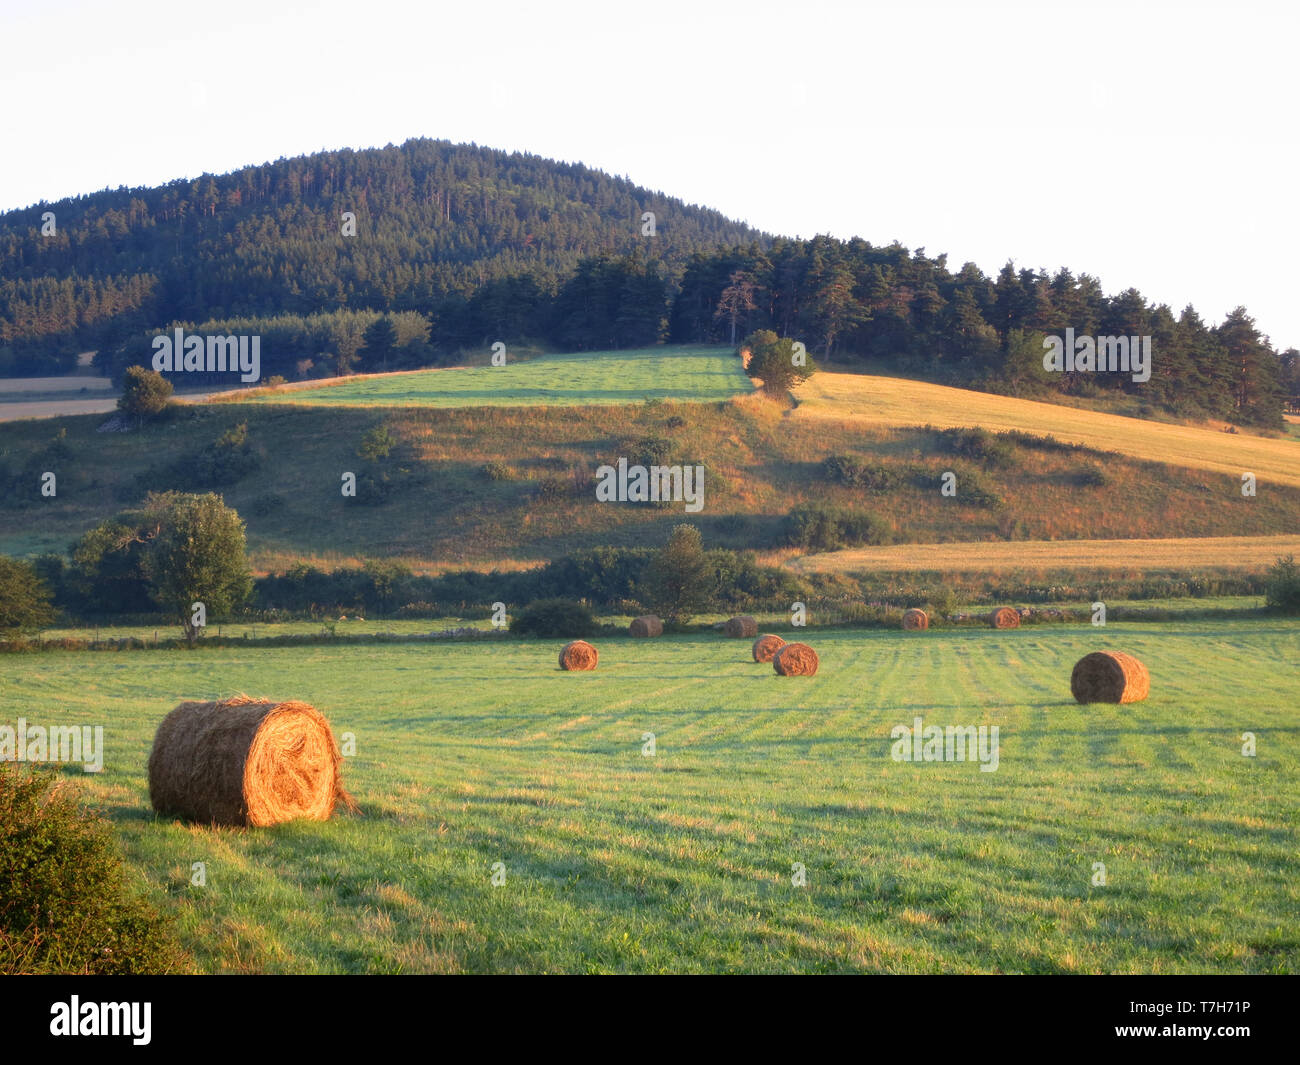 Agricultural fields along the GR 65, Via Podiensis, also know as Le Puy Route, in southern France. French part of the Camino de Santiago. - Stock Image